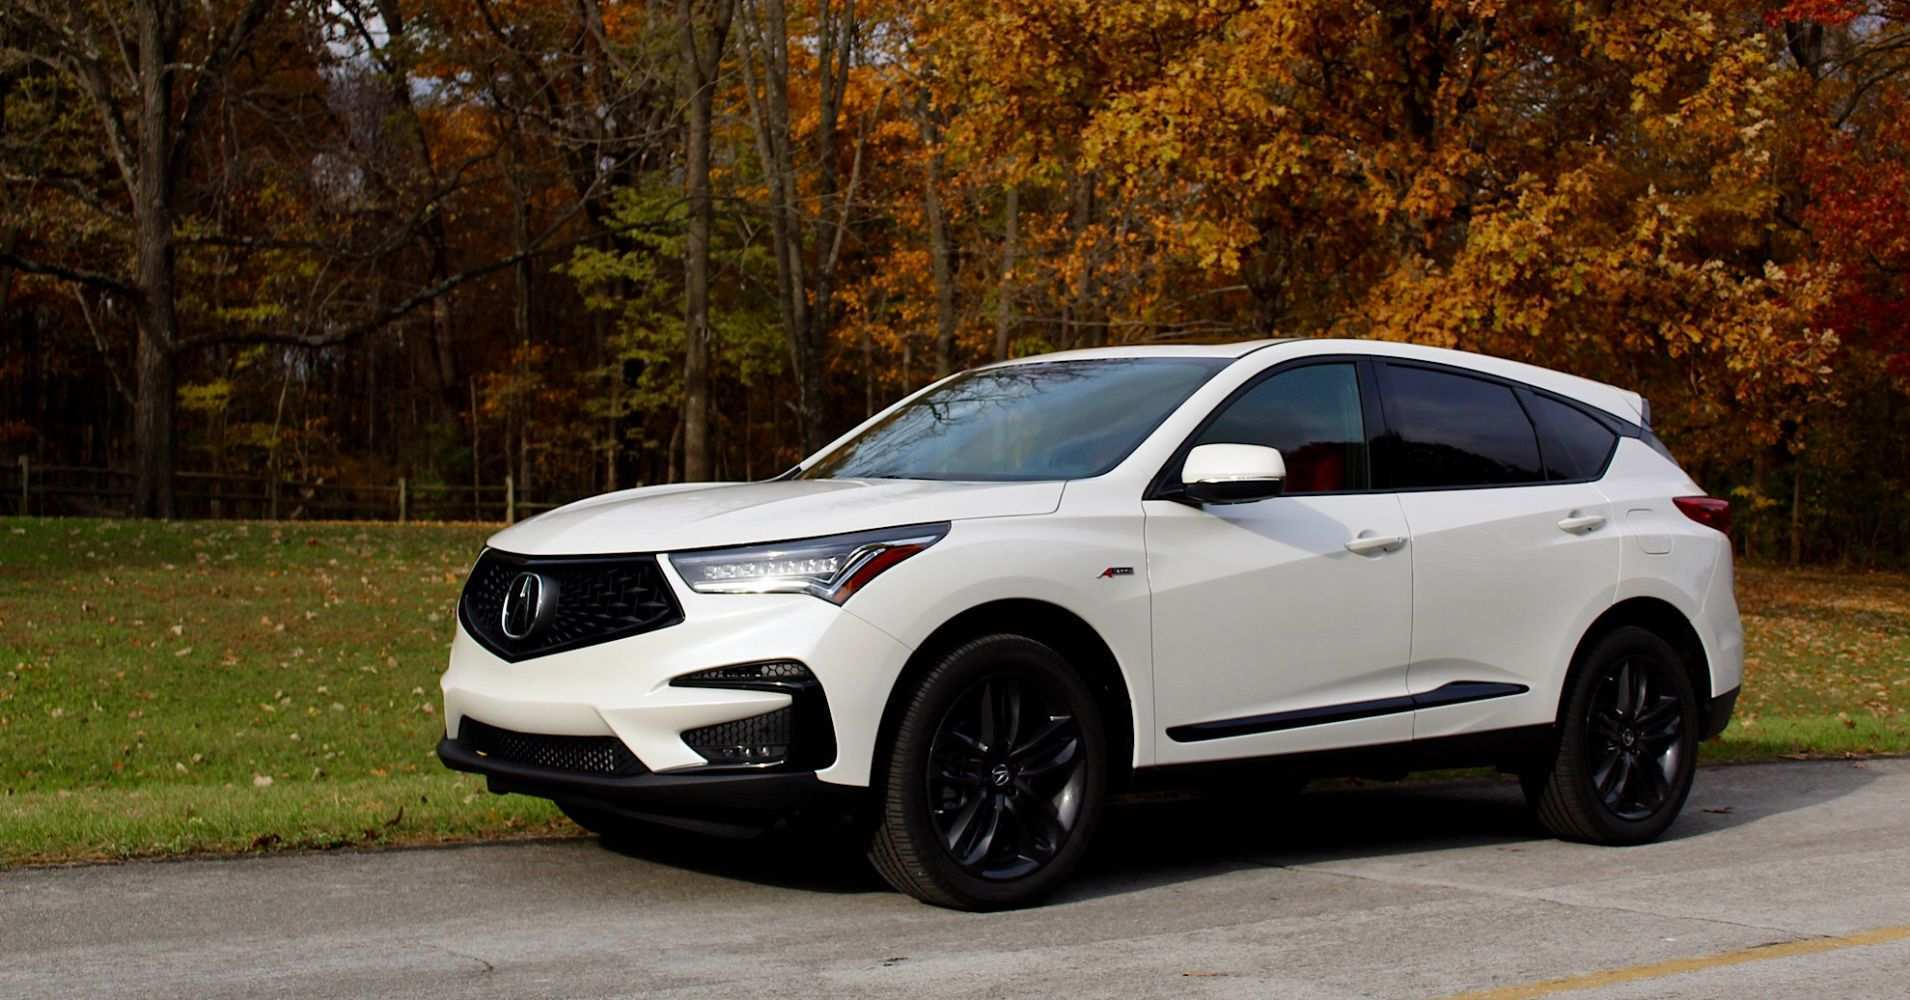 51 Gallery of 2019 Acura Rdx Images Exterior and Interior by 2019 Acura Rdx Images